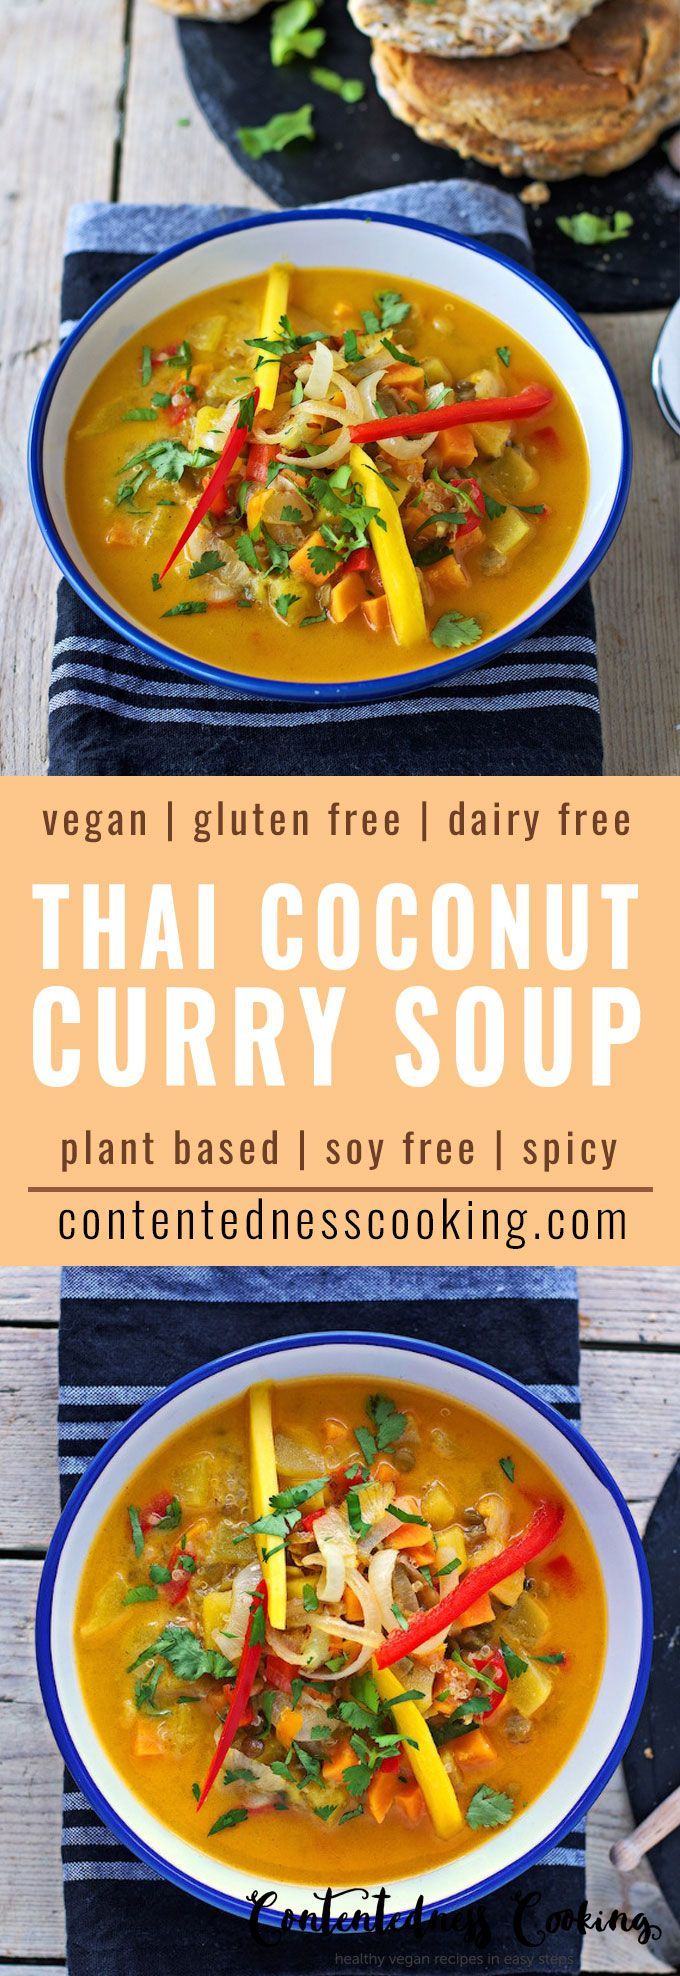 This Vegan Thai Coconut Soup comes with an easy Naan bread recipe. Both recipes are vegan and gluten free. Mango and coconut give this soup a tropical twist while quinoa and lentils add protein and heartiness. #vegan #plantbased #dairyfree #curry